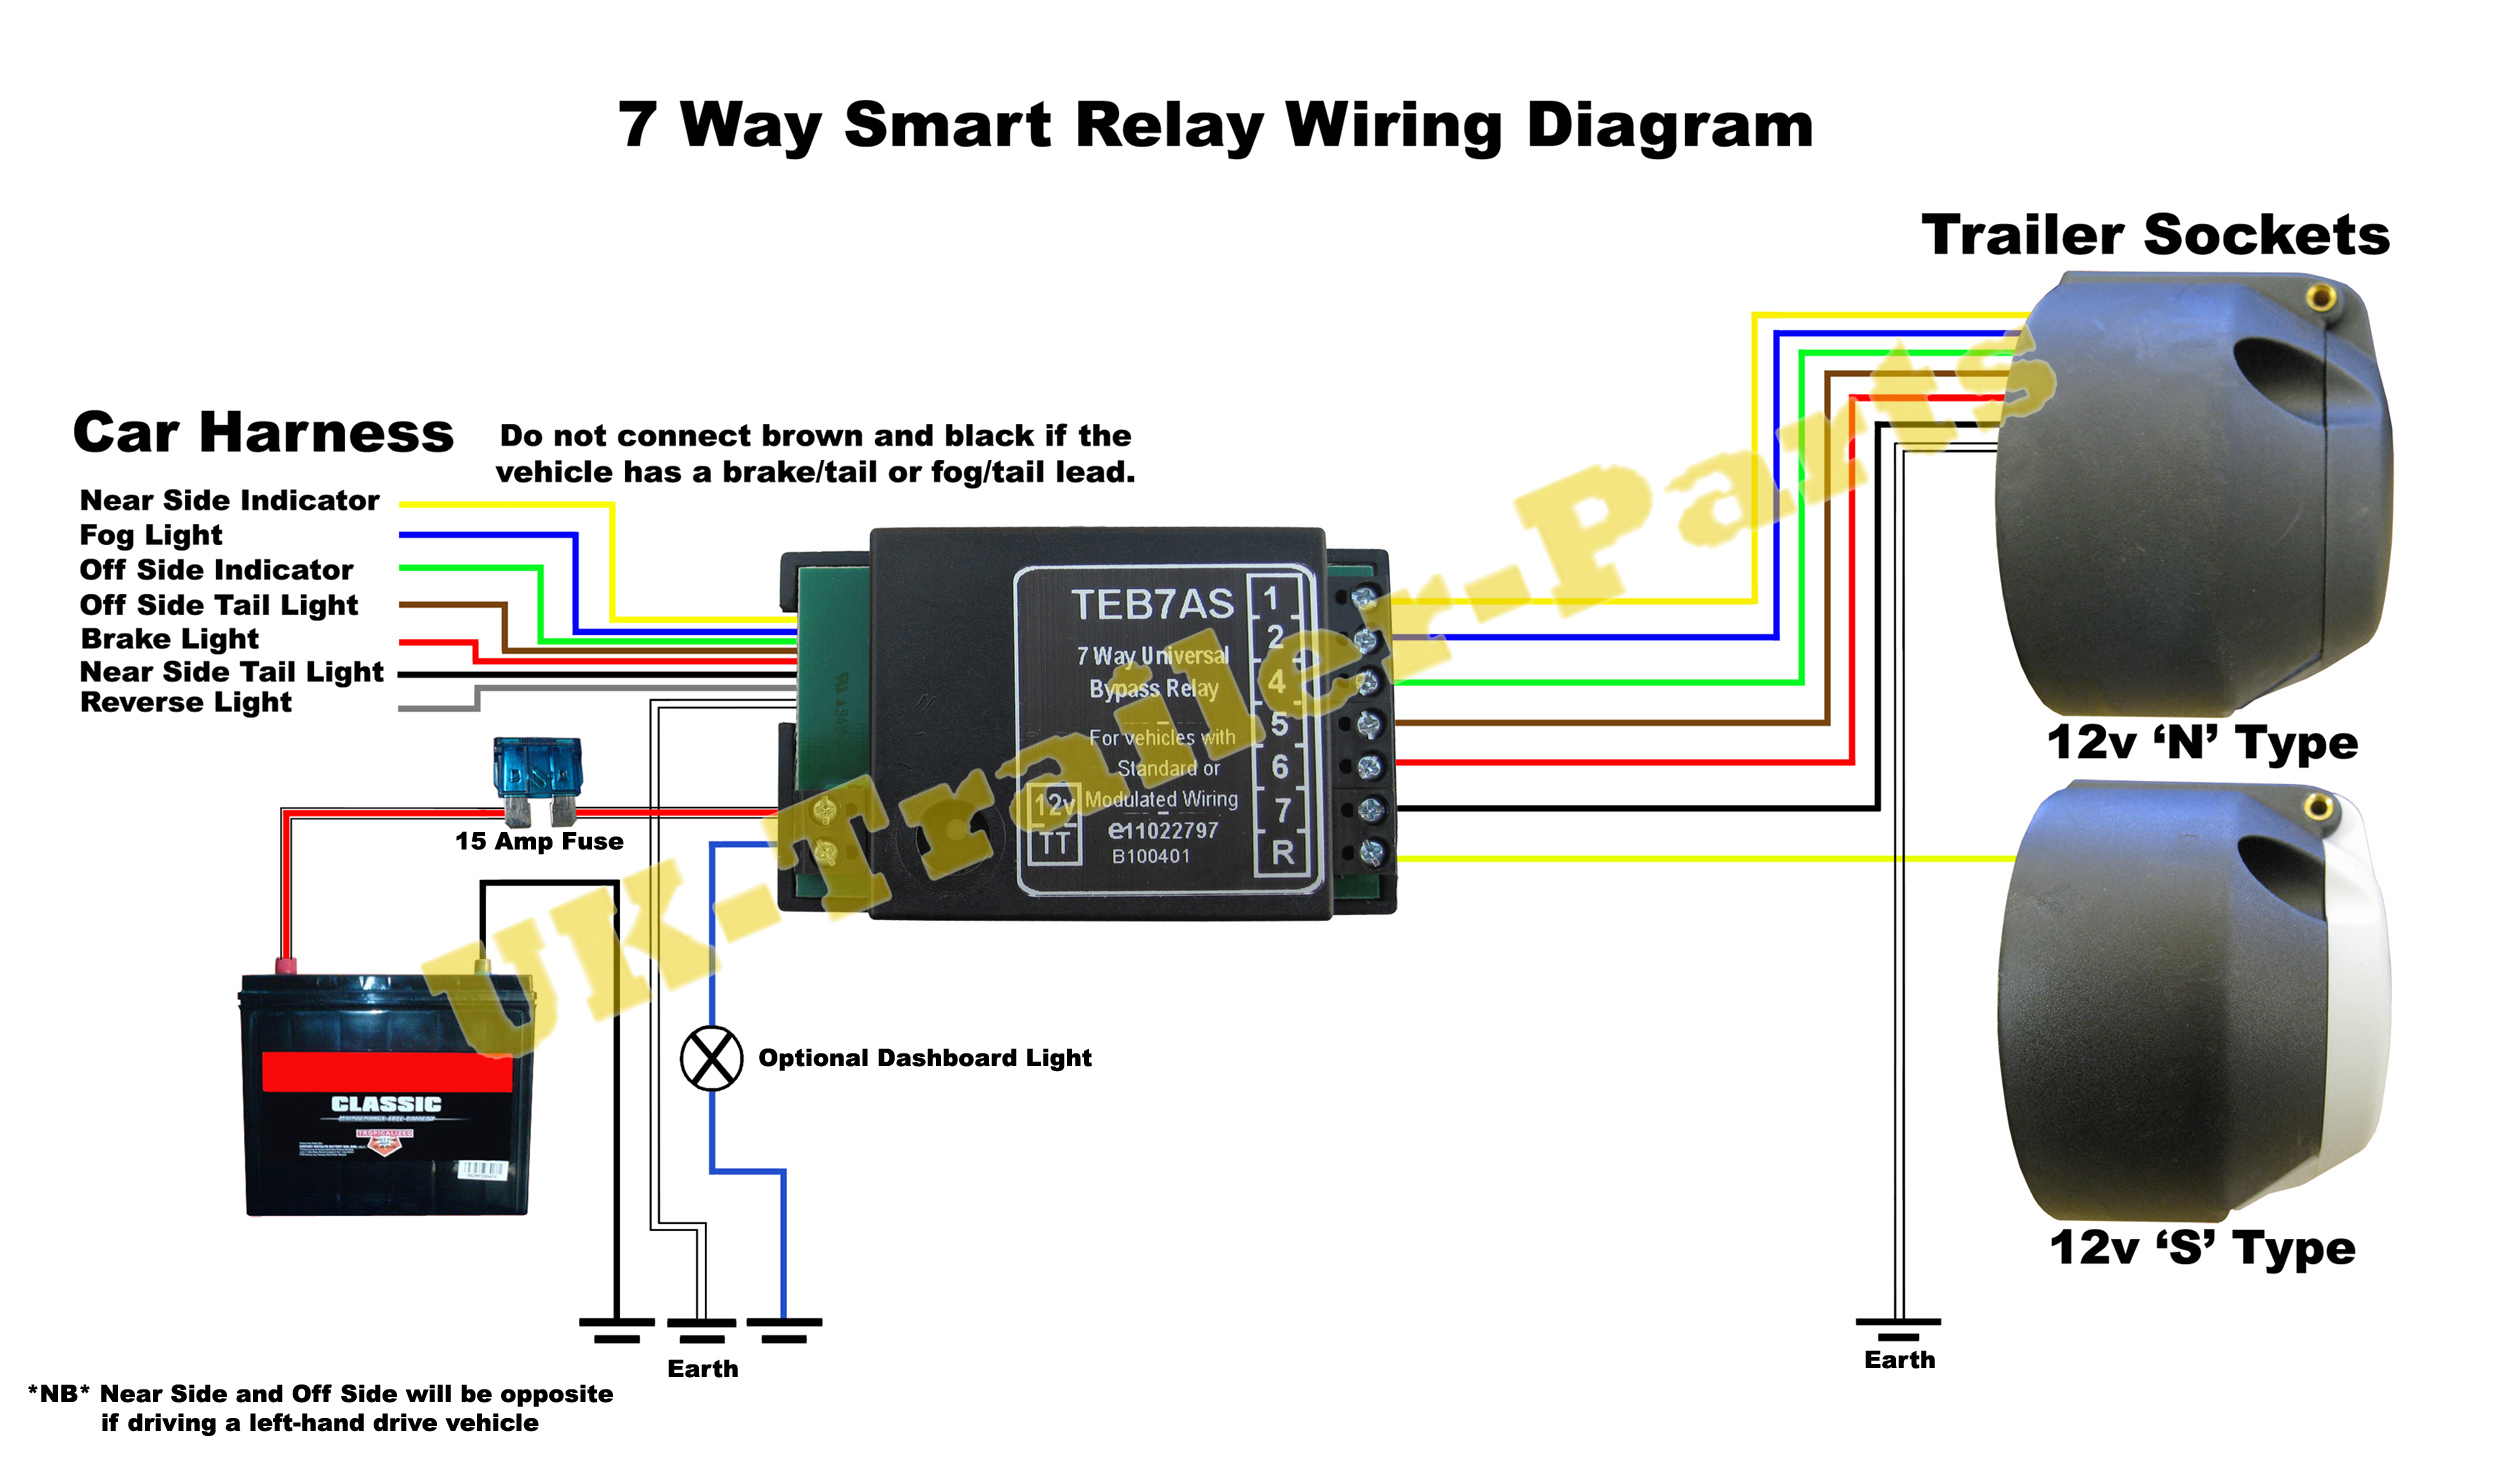 7 Pin Relay Wiring Diagram Guide And Troubleshooting Of A 4 Prong Trailer Harness Todays Rh 18 15 9 1813weddingbarn Com 5